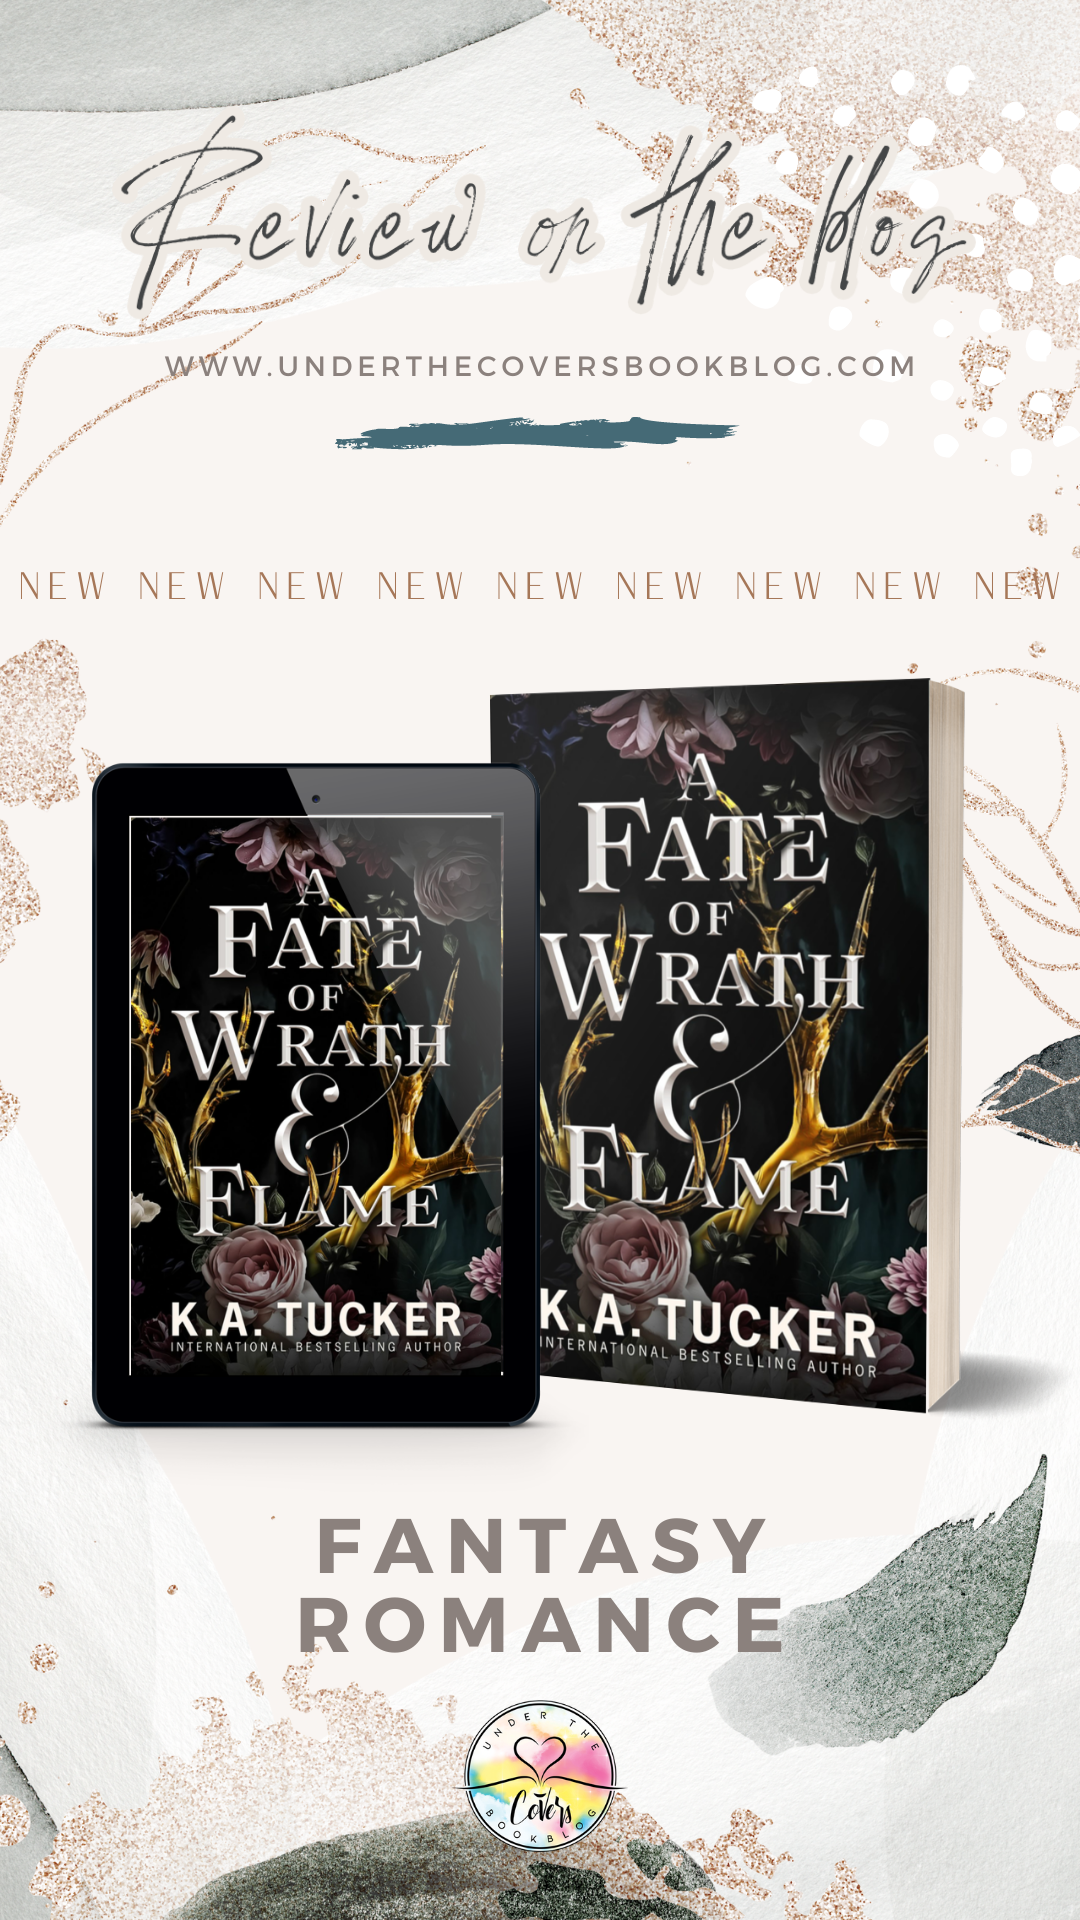 ARC Review: A Fate of Wrath and Flame by K.A. Tucker